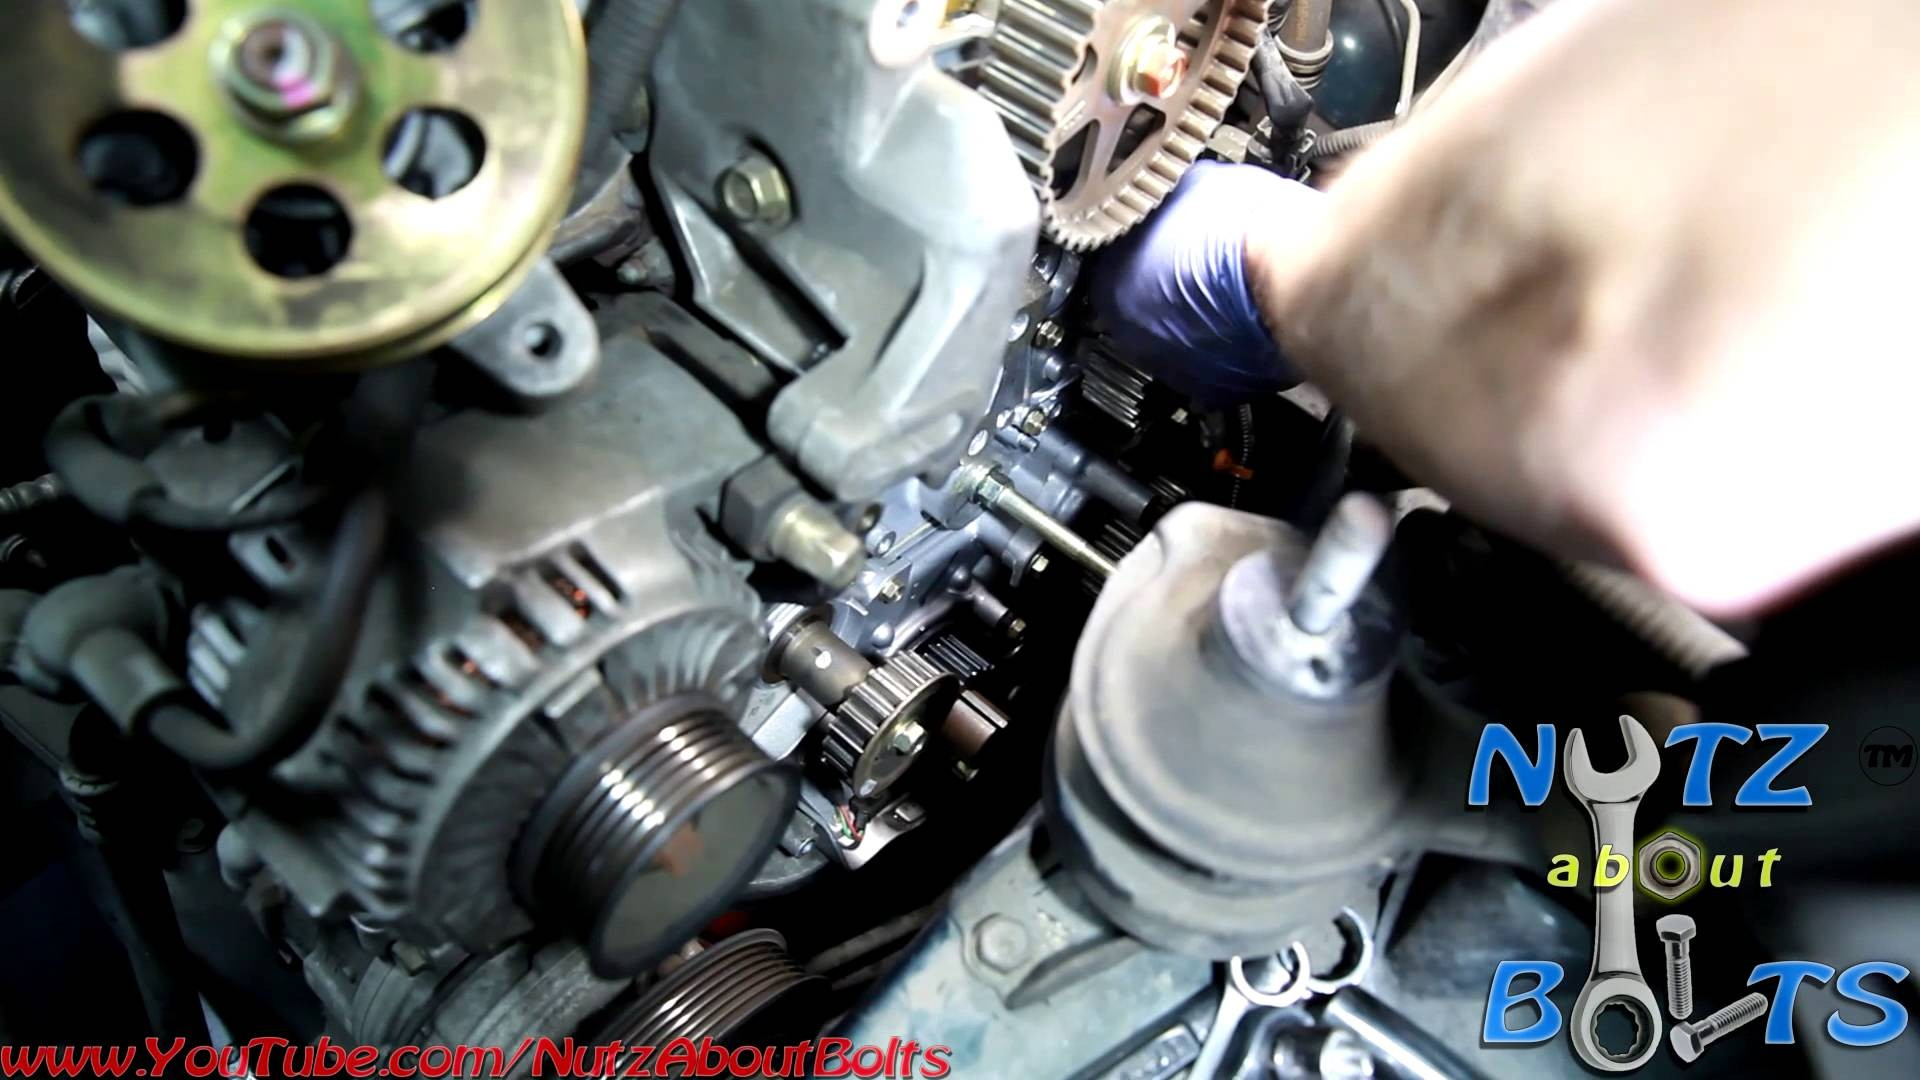 1998 Honda Accord Engine Diagram 1998 2002 Honda Accord Timing Belt Replacement with Water Pump Of 1998 Honda Accord Engine Diagram